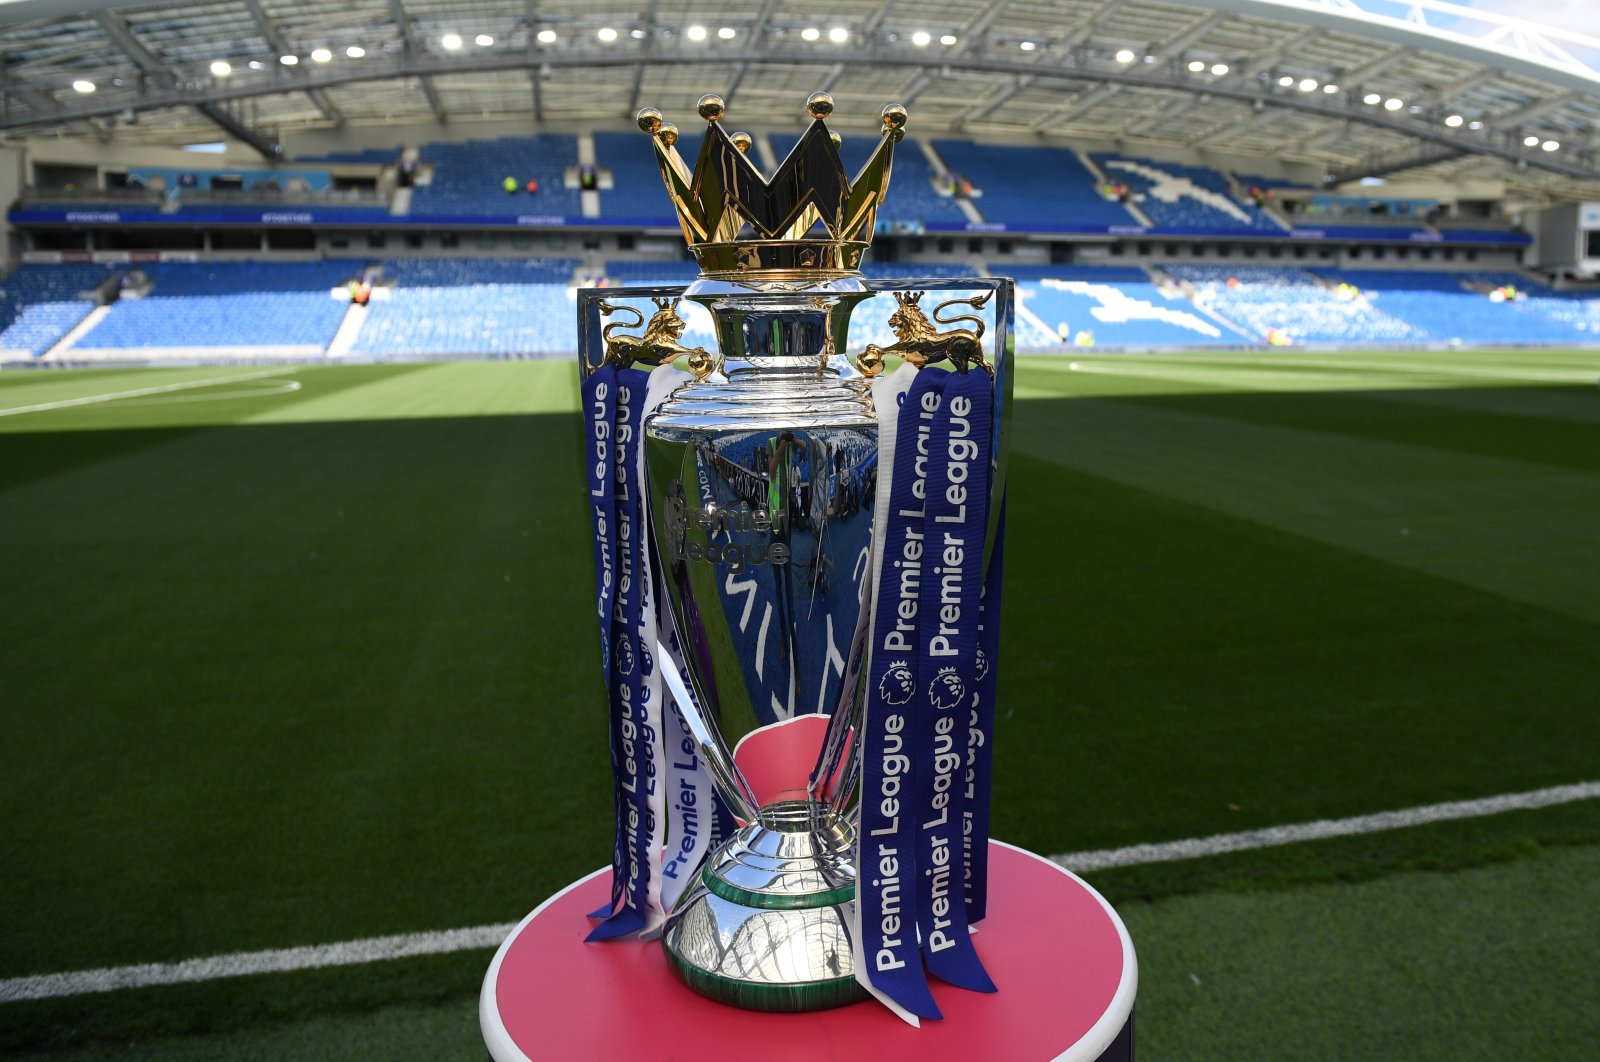 In this file photo taken on August 12, 2017, The Premier League trophy sits beside the pitch ahead of the English Premier League football match between Brighton and Hove Albion and Manchester City at the American Express Community Stadium in Brighton. (AFP Photo)